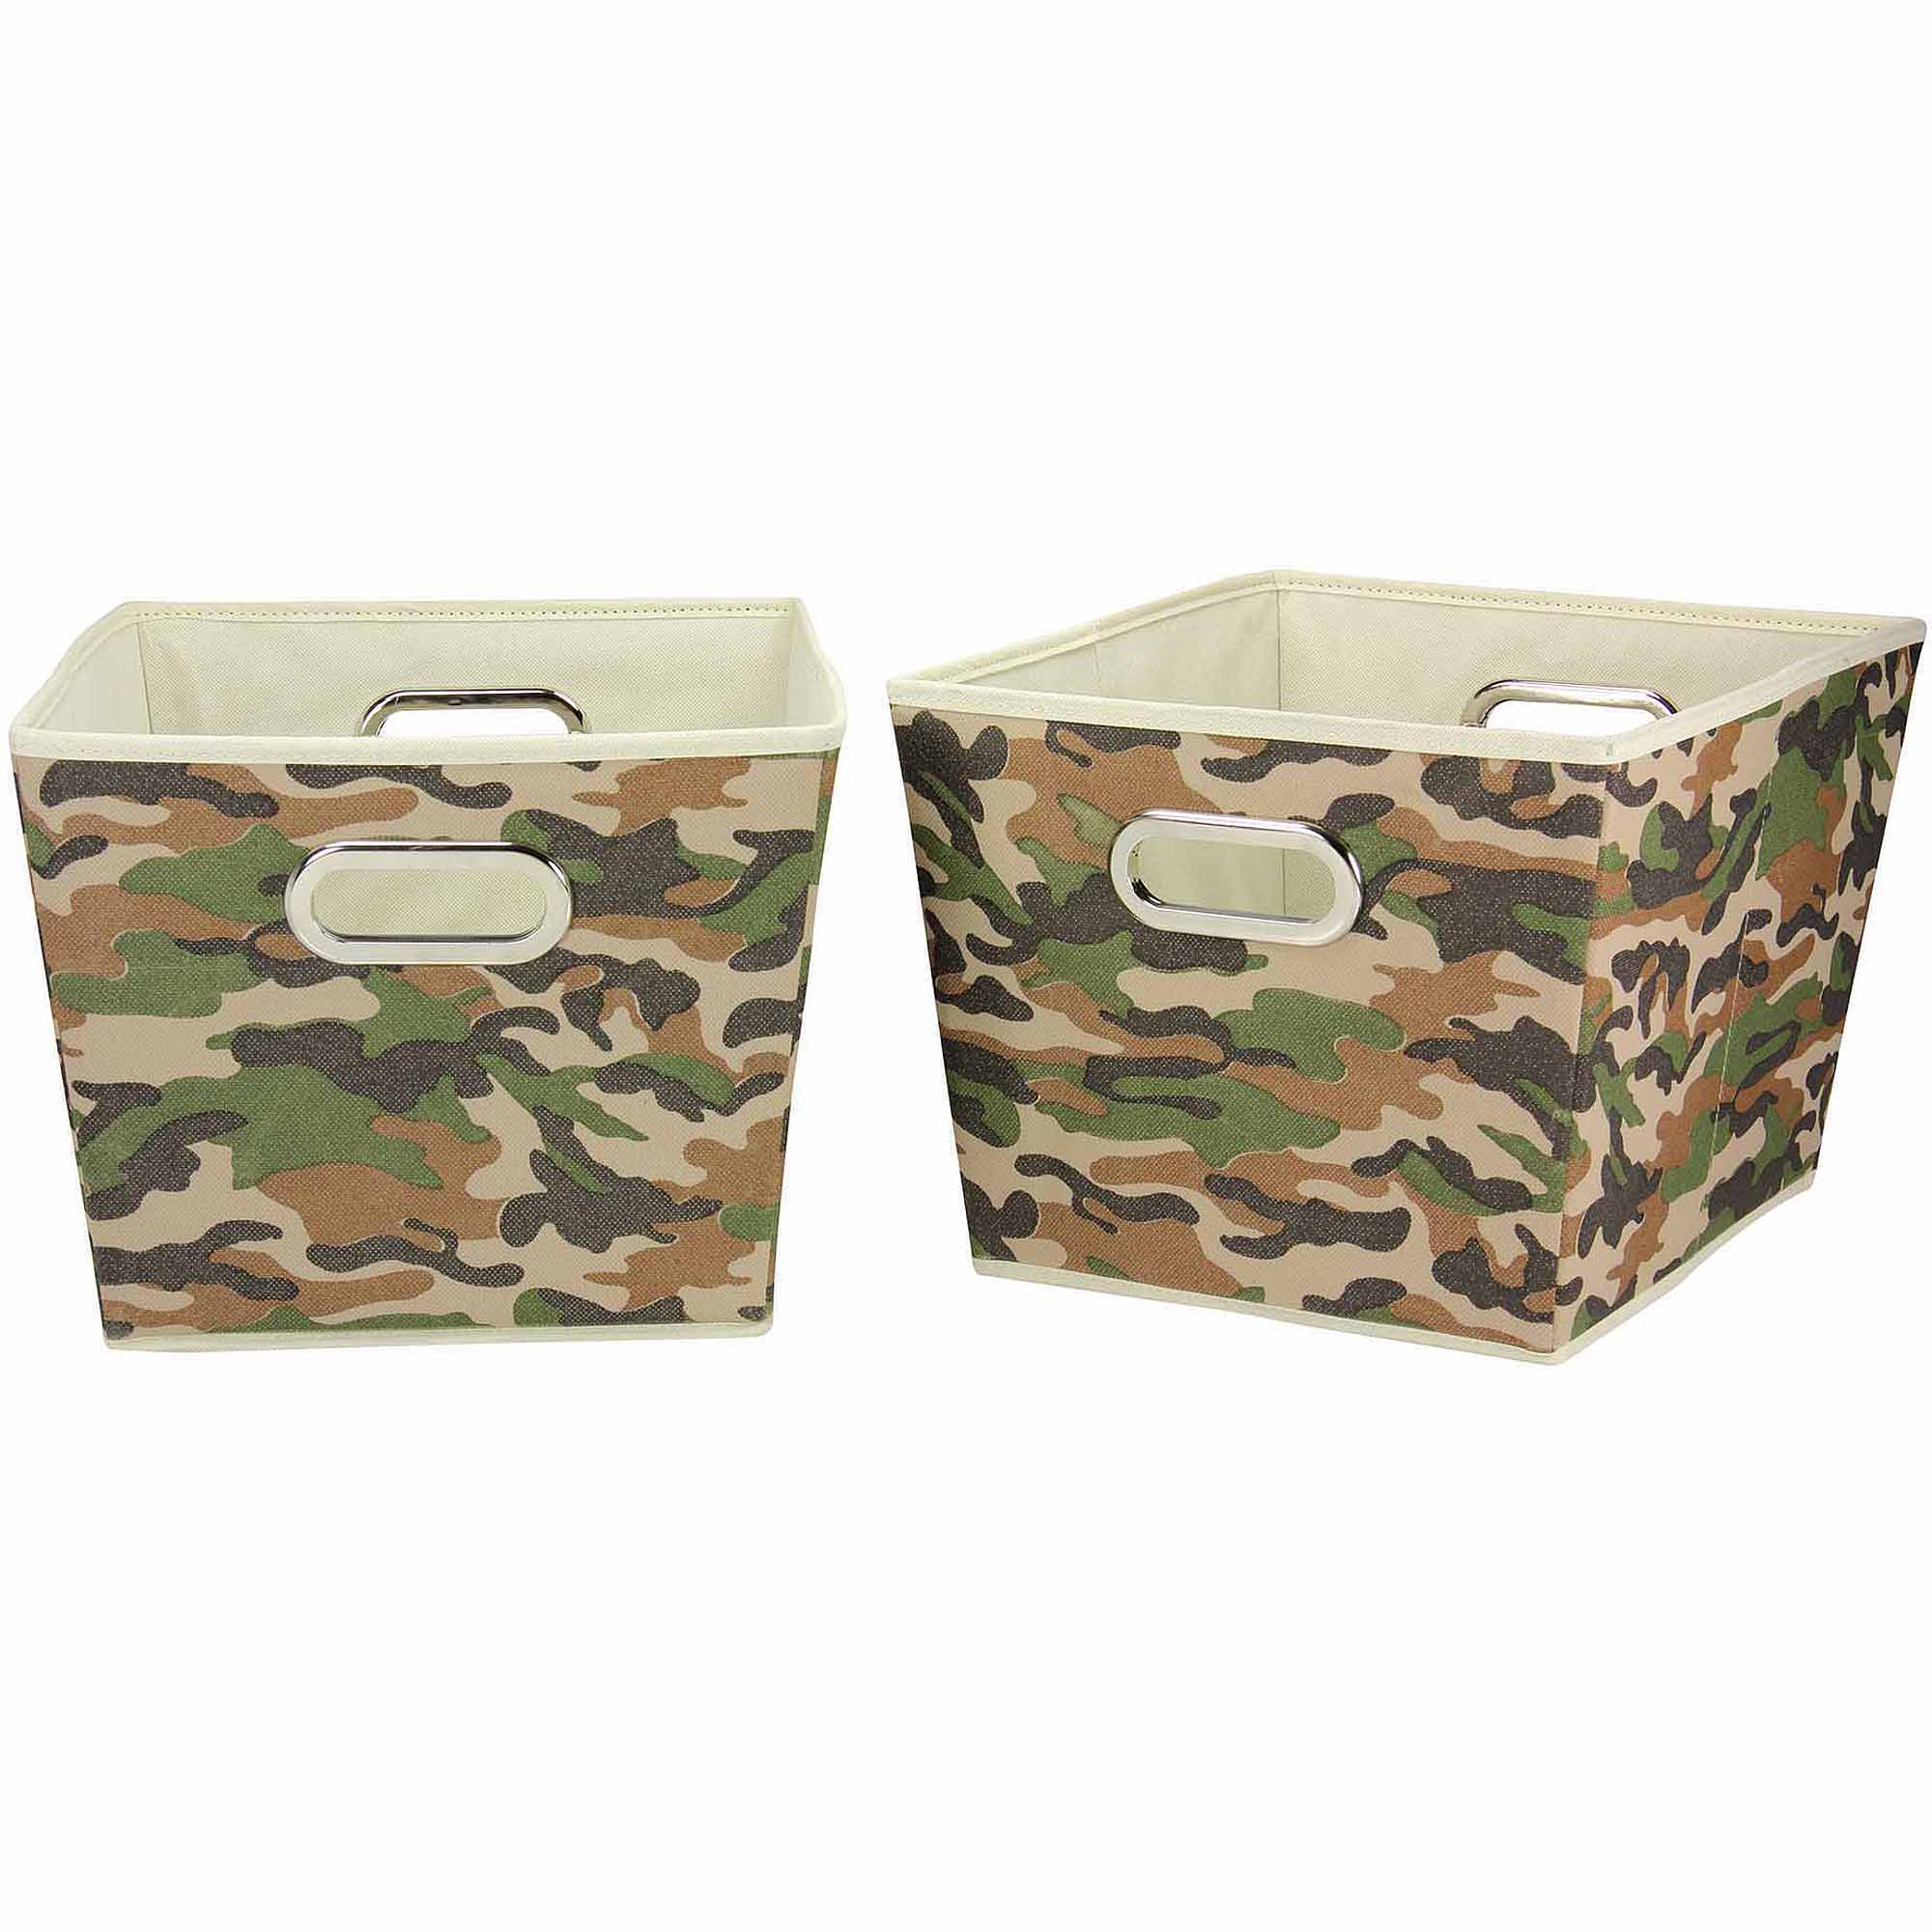 household essentials decorative storage bins 2pk medium camo design walmartcom - Decorative Storage Bins